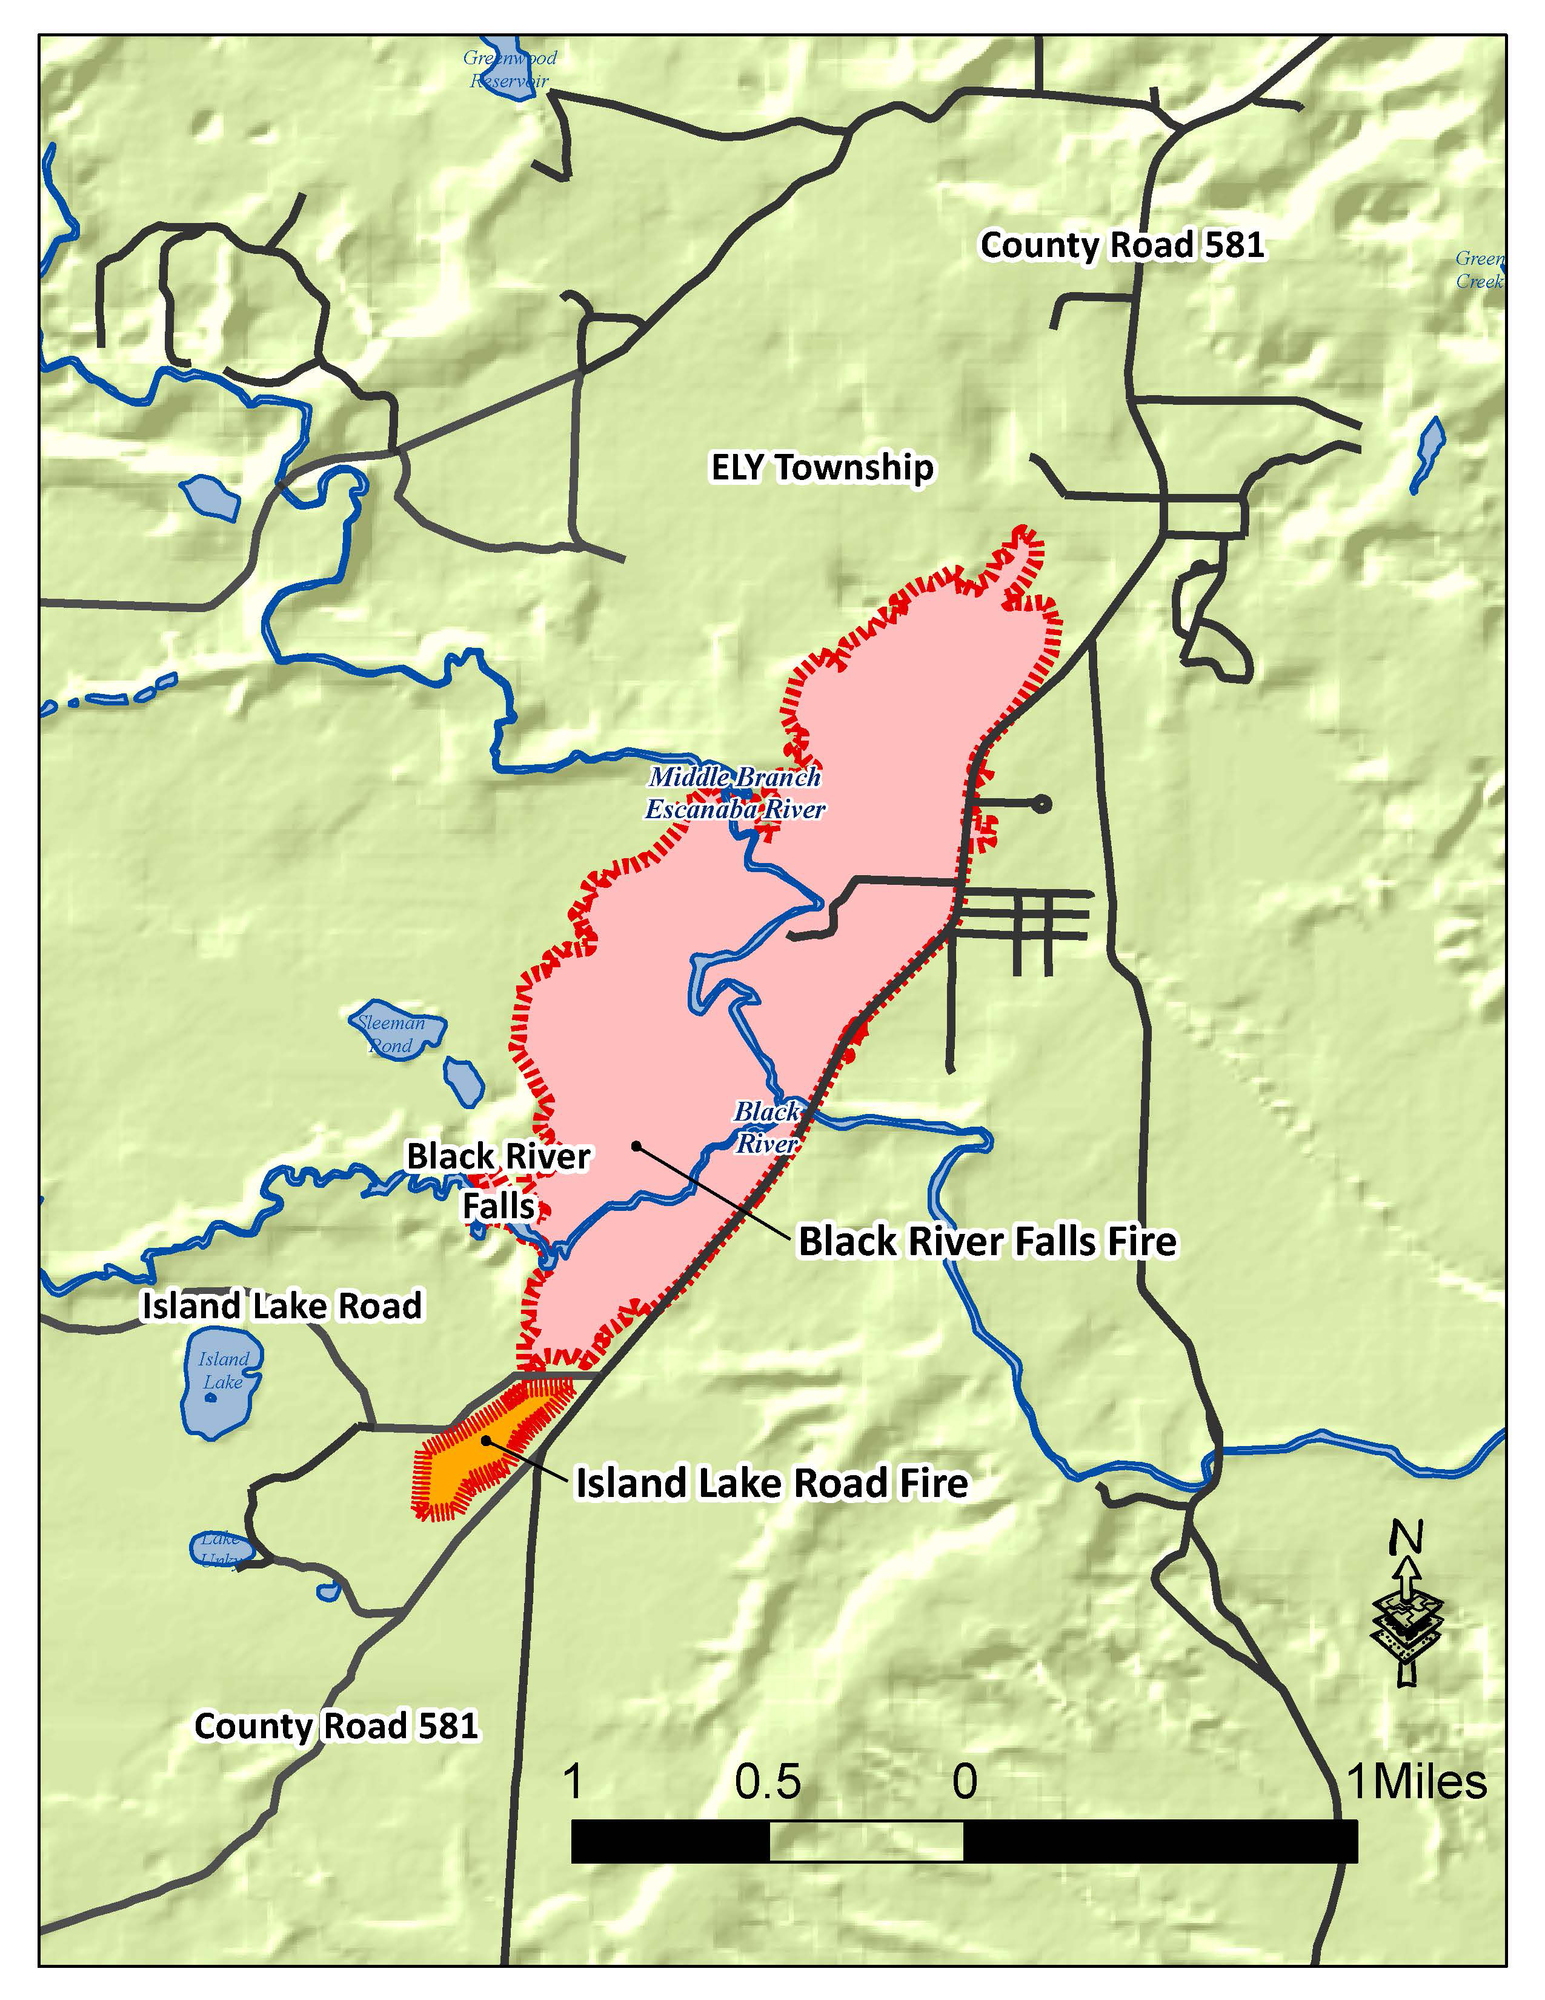 A map shows the locations of the Black River Falls and Island Lake Road fires.